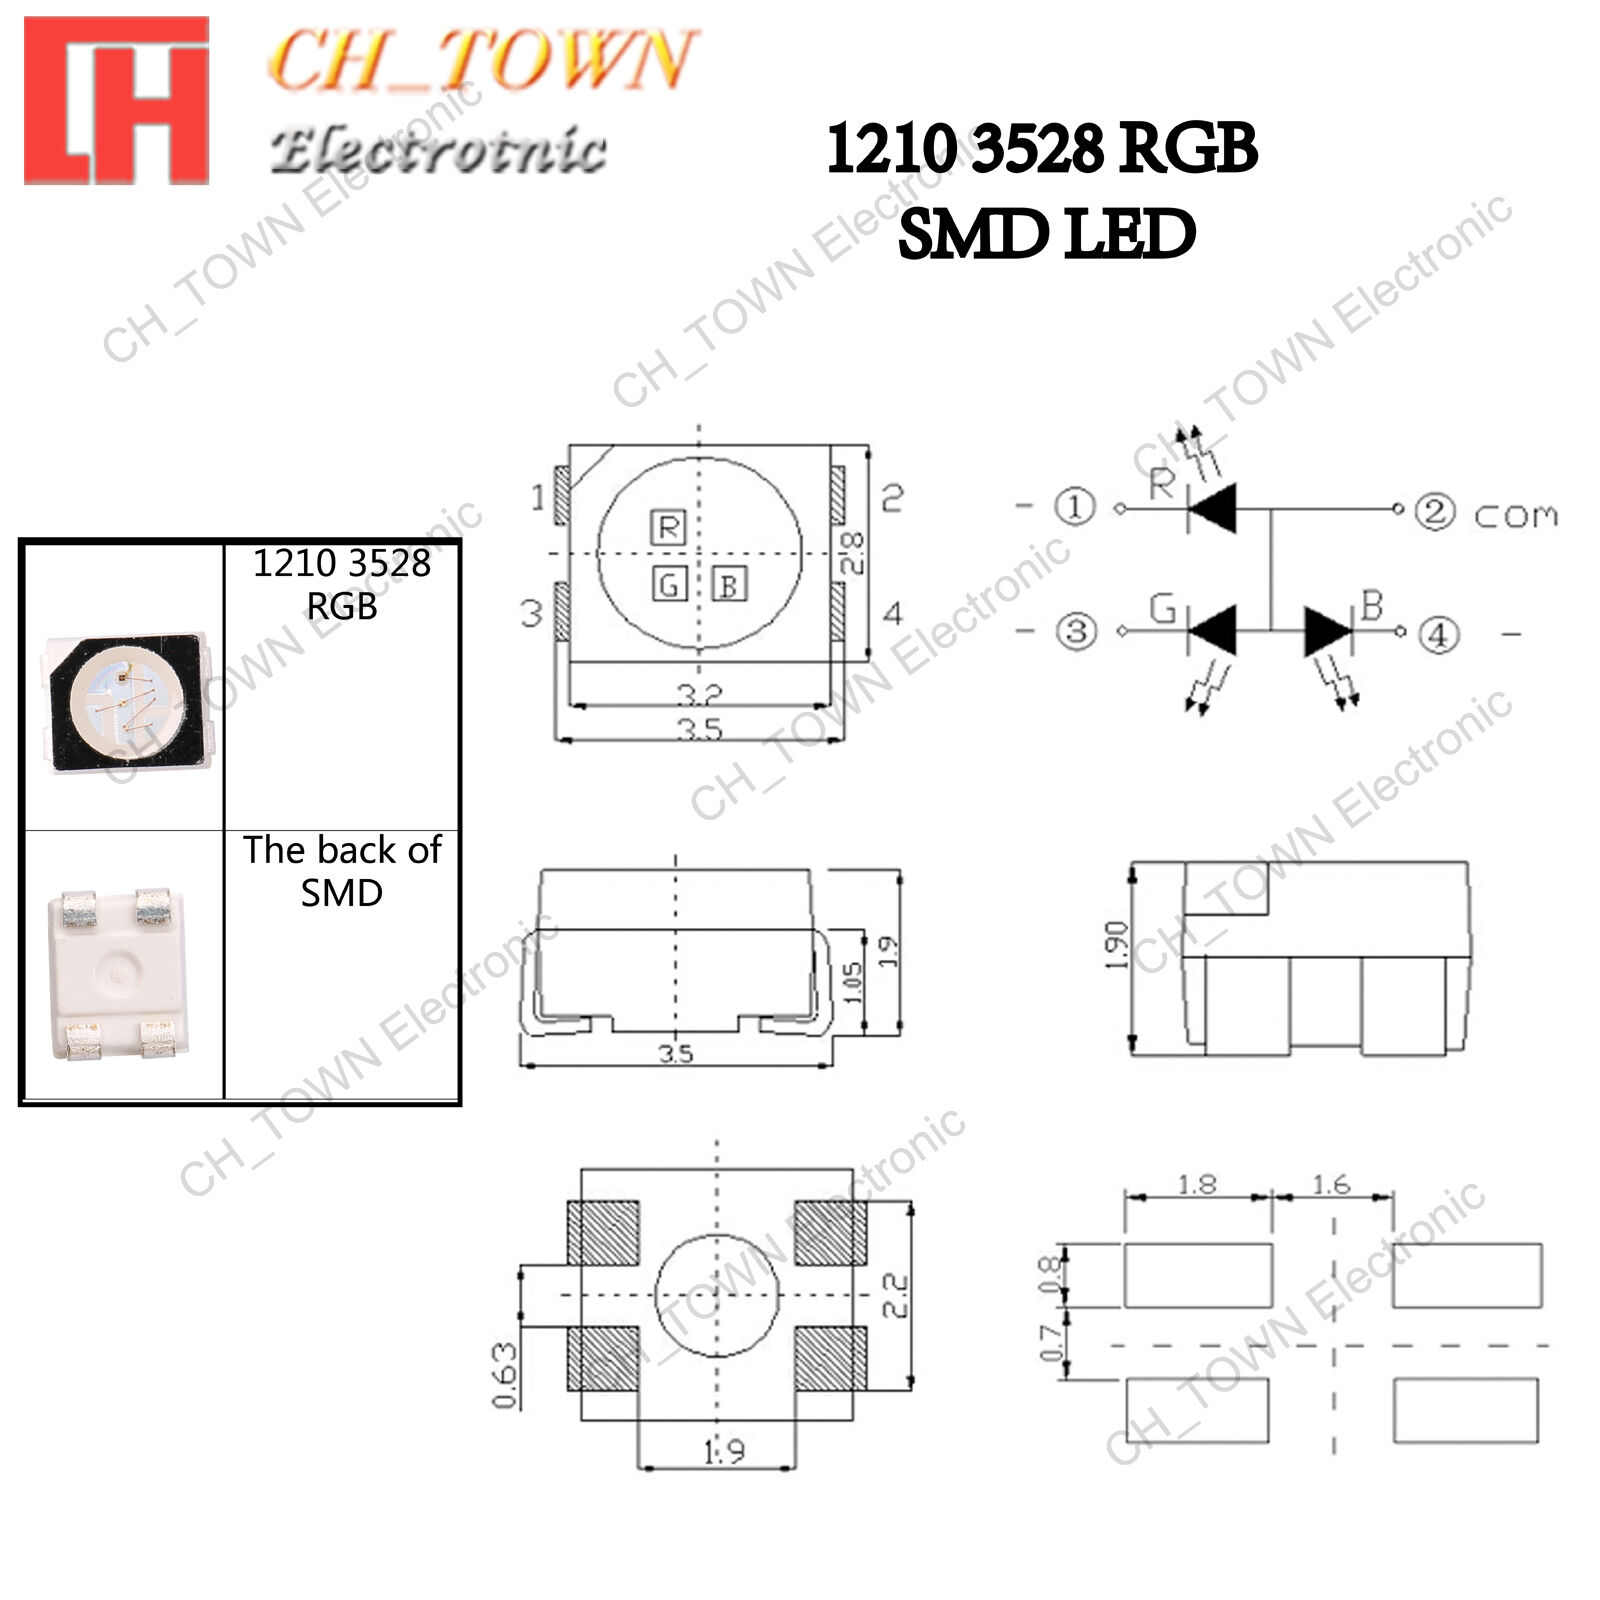 SMD LED PLCC2 2835 60mA SUNNY WHITE blanc warm wit very flat and bright 3528